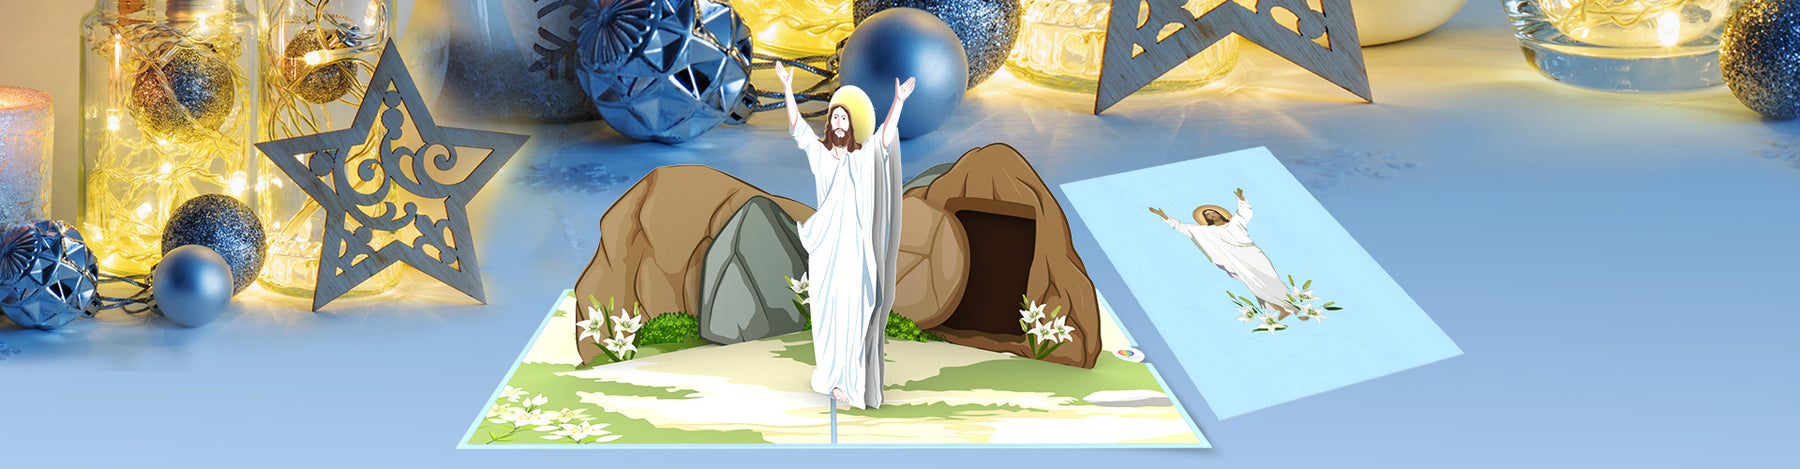 CP046 Christ is risen Blog pop up card easter